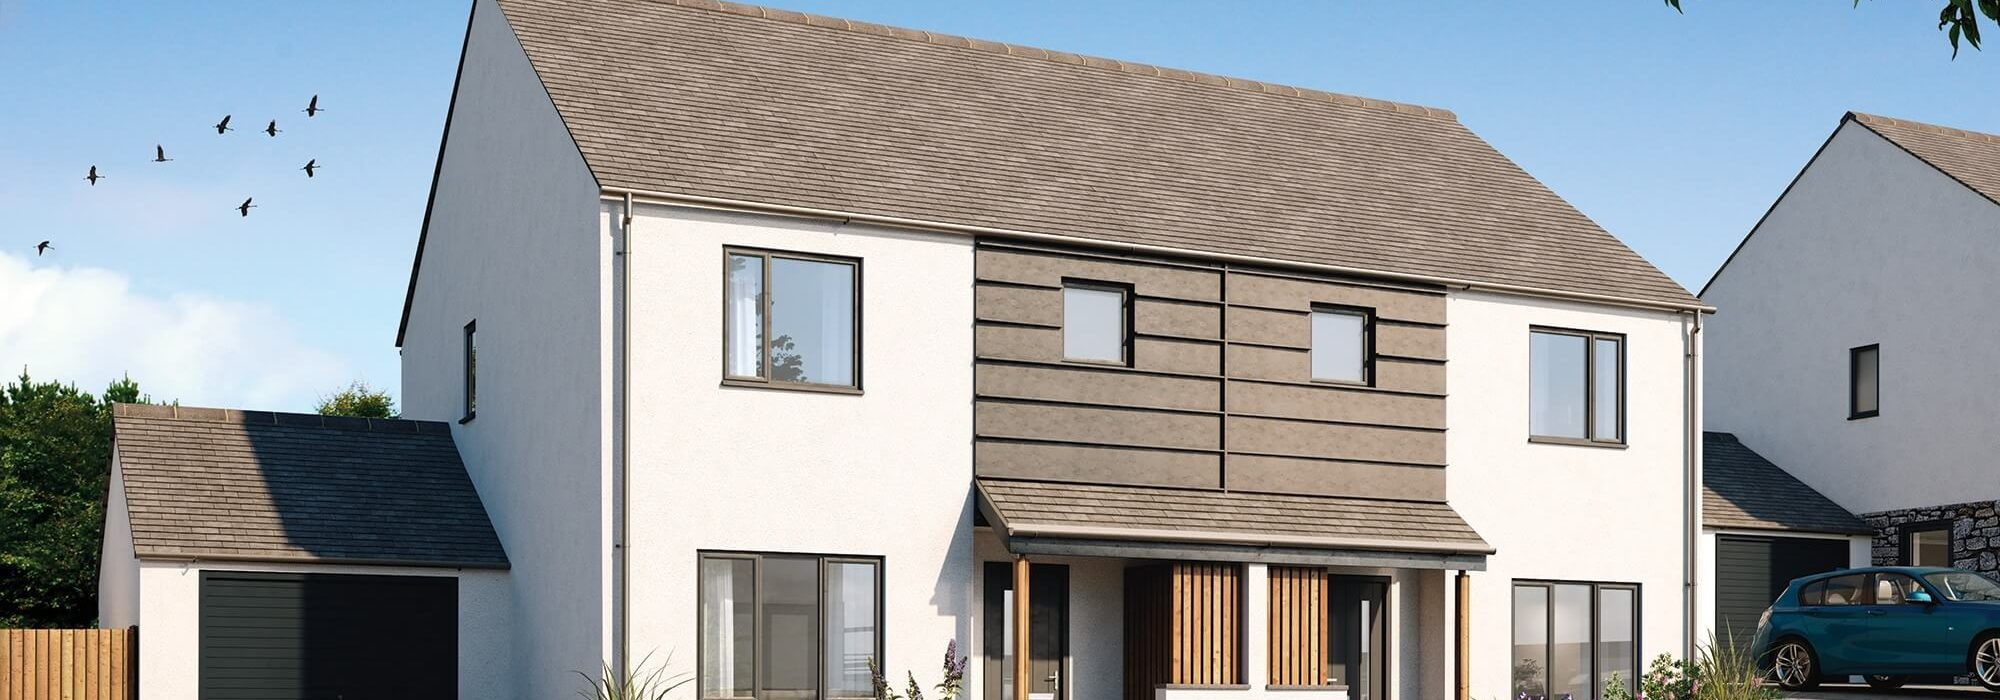 2bedroom home HalwynMeadows Crantock.jpeg 2000x700 - House 31 - 3 Bedroom Semi-Detached Home